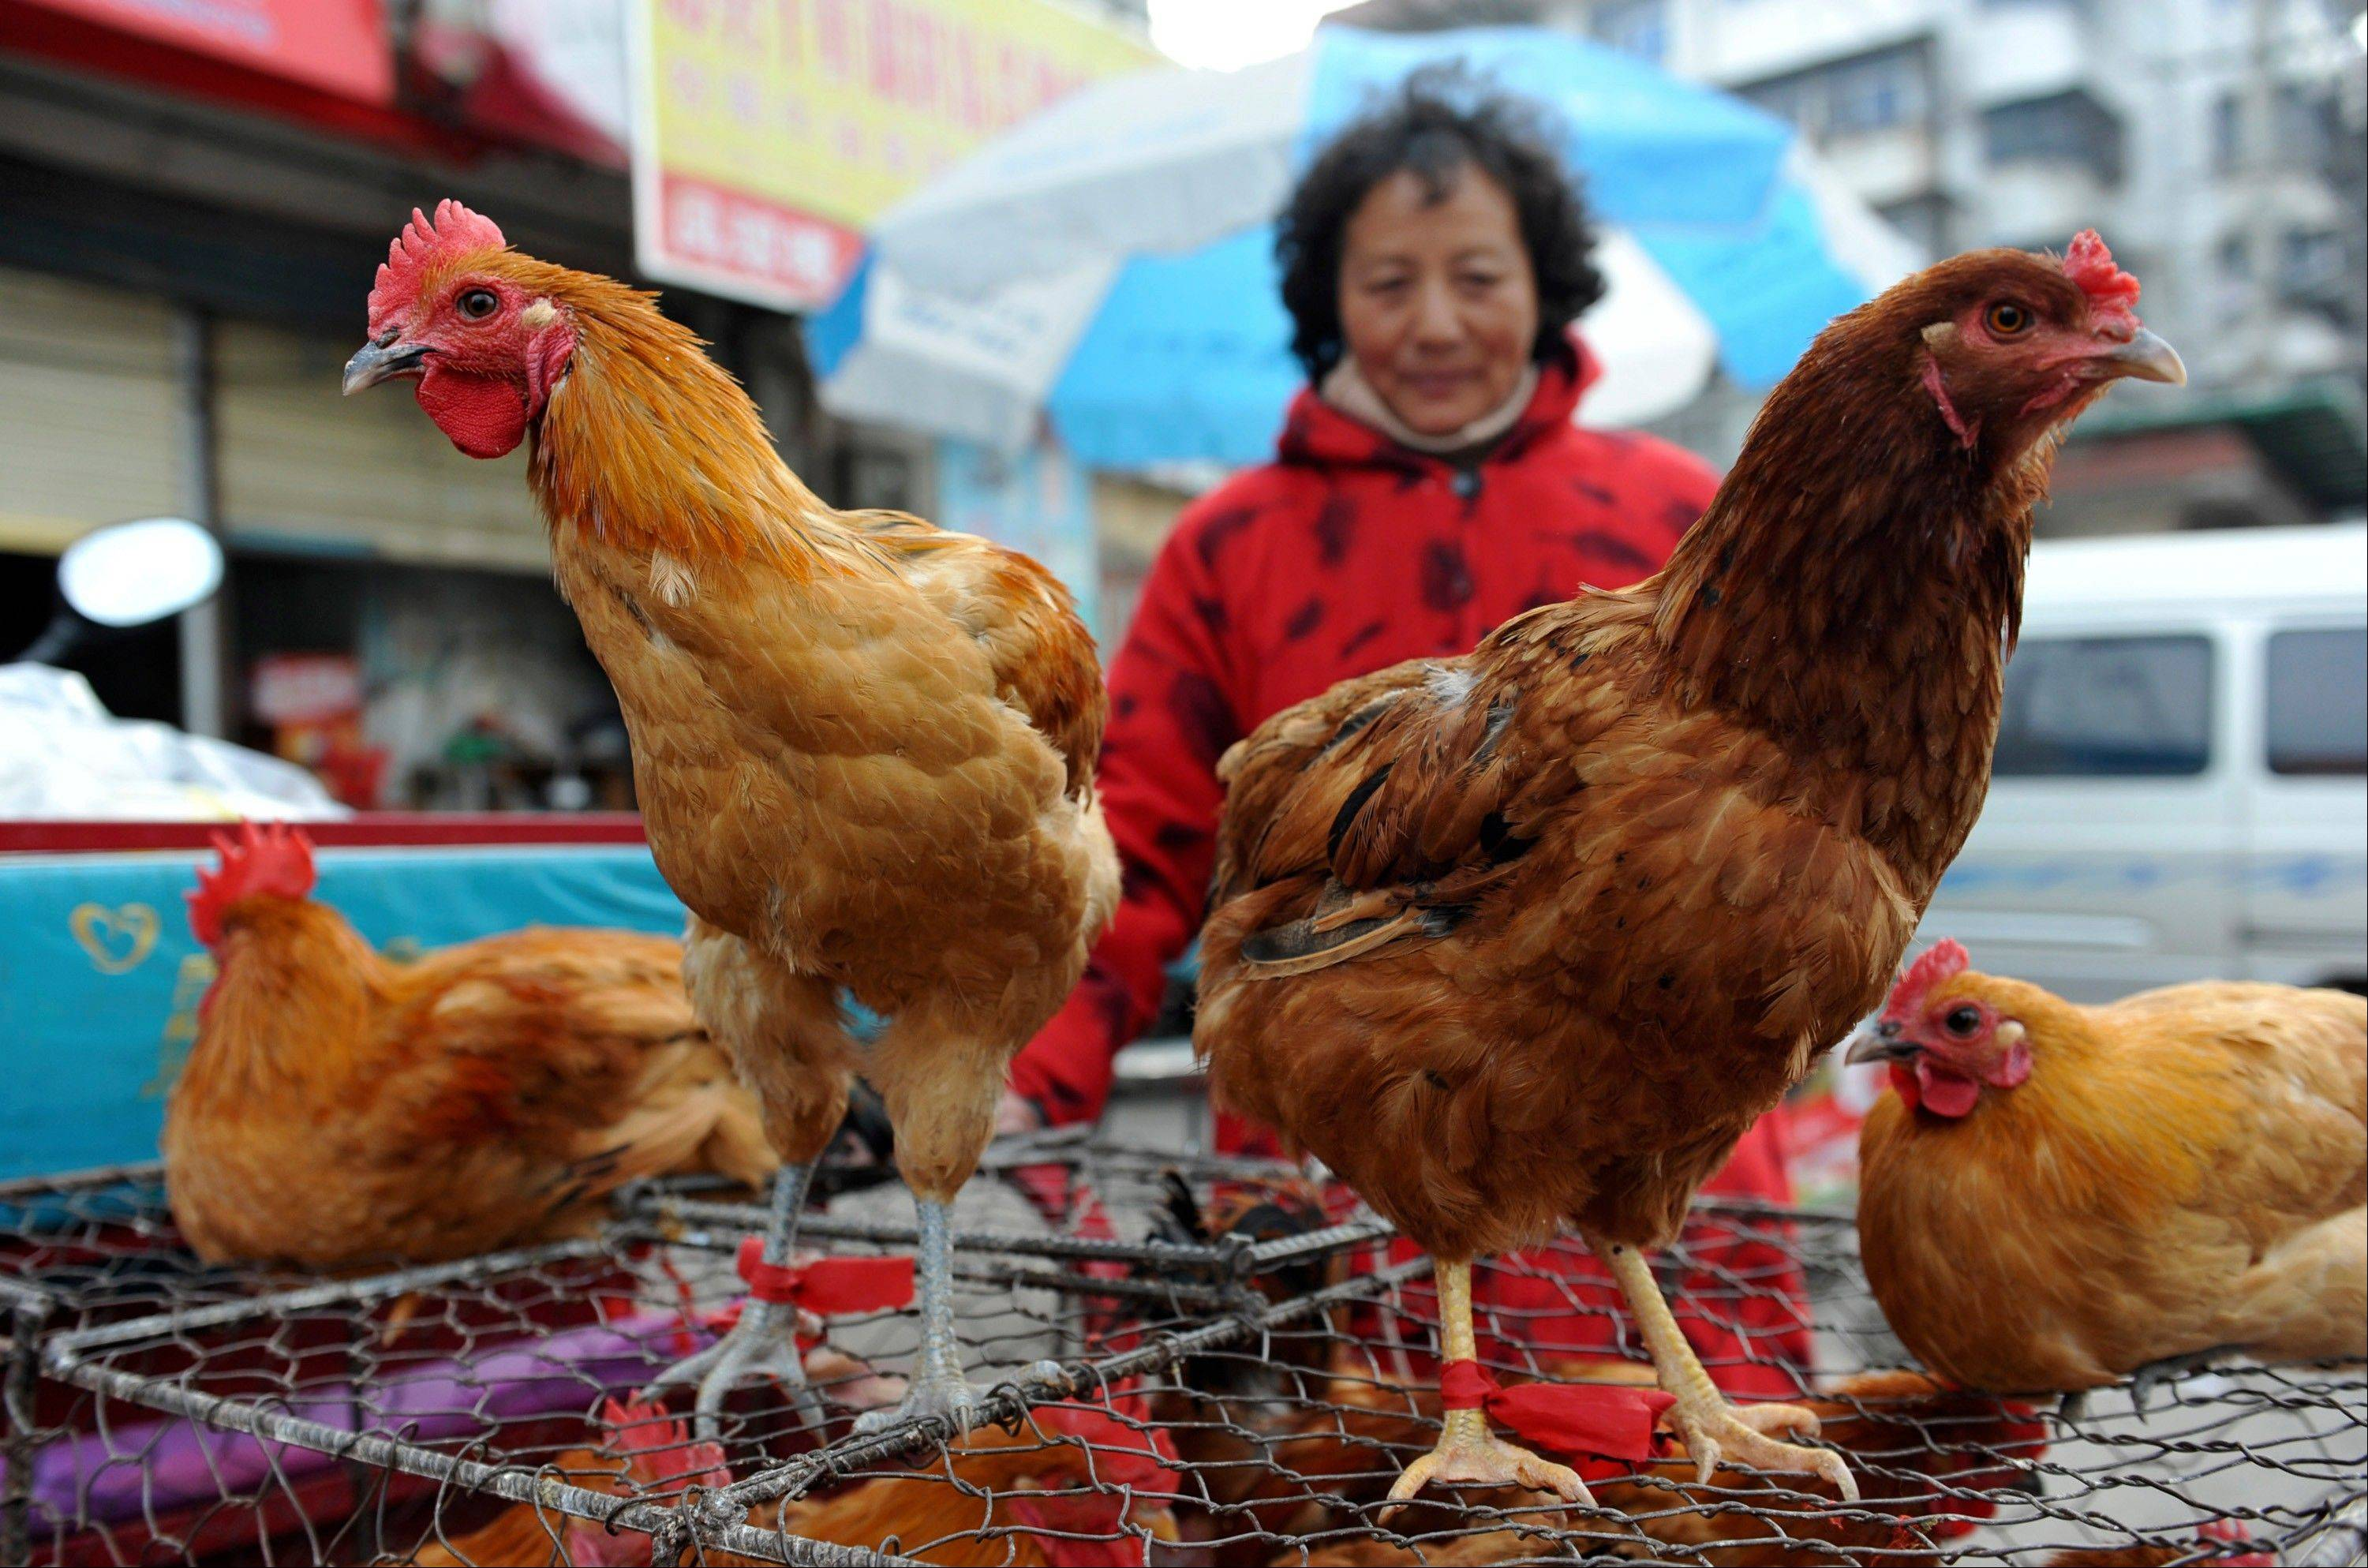 A vendor waits for customers near chicken cages at a market in Fuyang city, in central China's Anhui province, Sunday. Two Shanghai men have died from a lesser-known type of bird flu in the first known human deaths from the strain, and Chinese authorities said Sunday that it wasn't clear how they were infected, but that there was no evidence of human-to-human transmission. A third person, a woman in the nearby province of Anhui, also contracted the H7N9 strain of bird flu and was in critical condition, China's National Health and Family Planning Commission said in a report on its website.